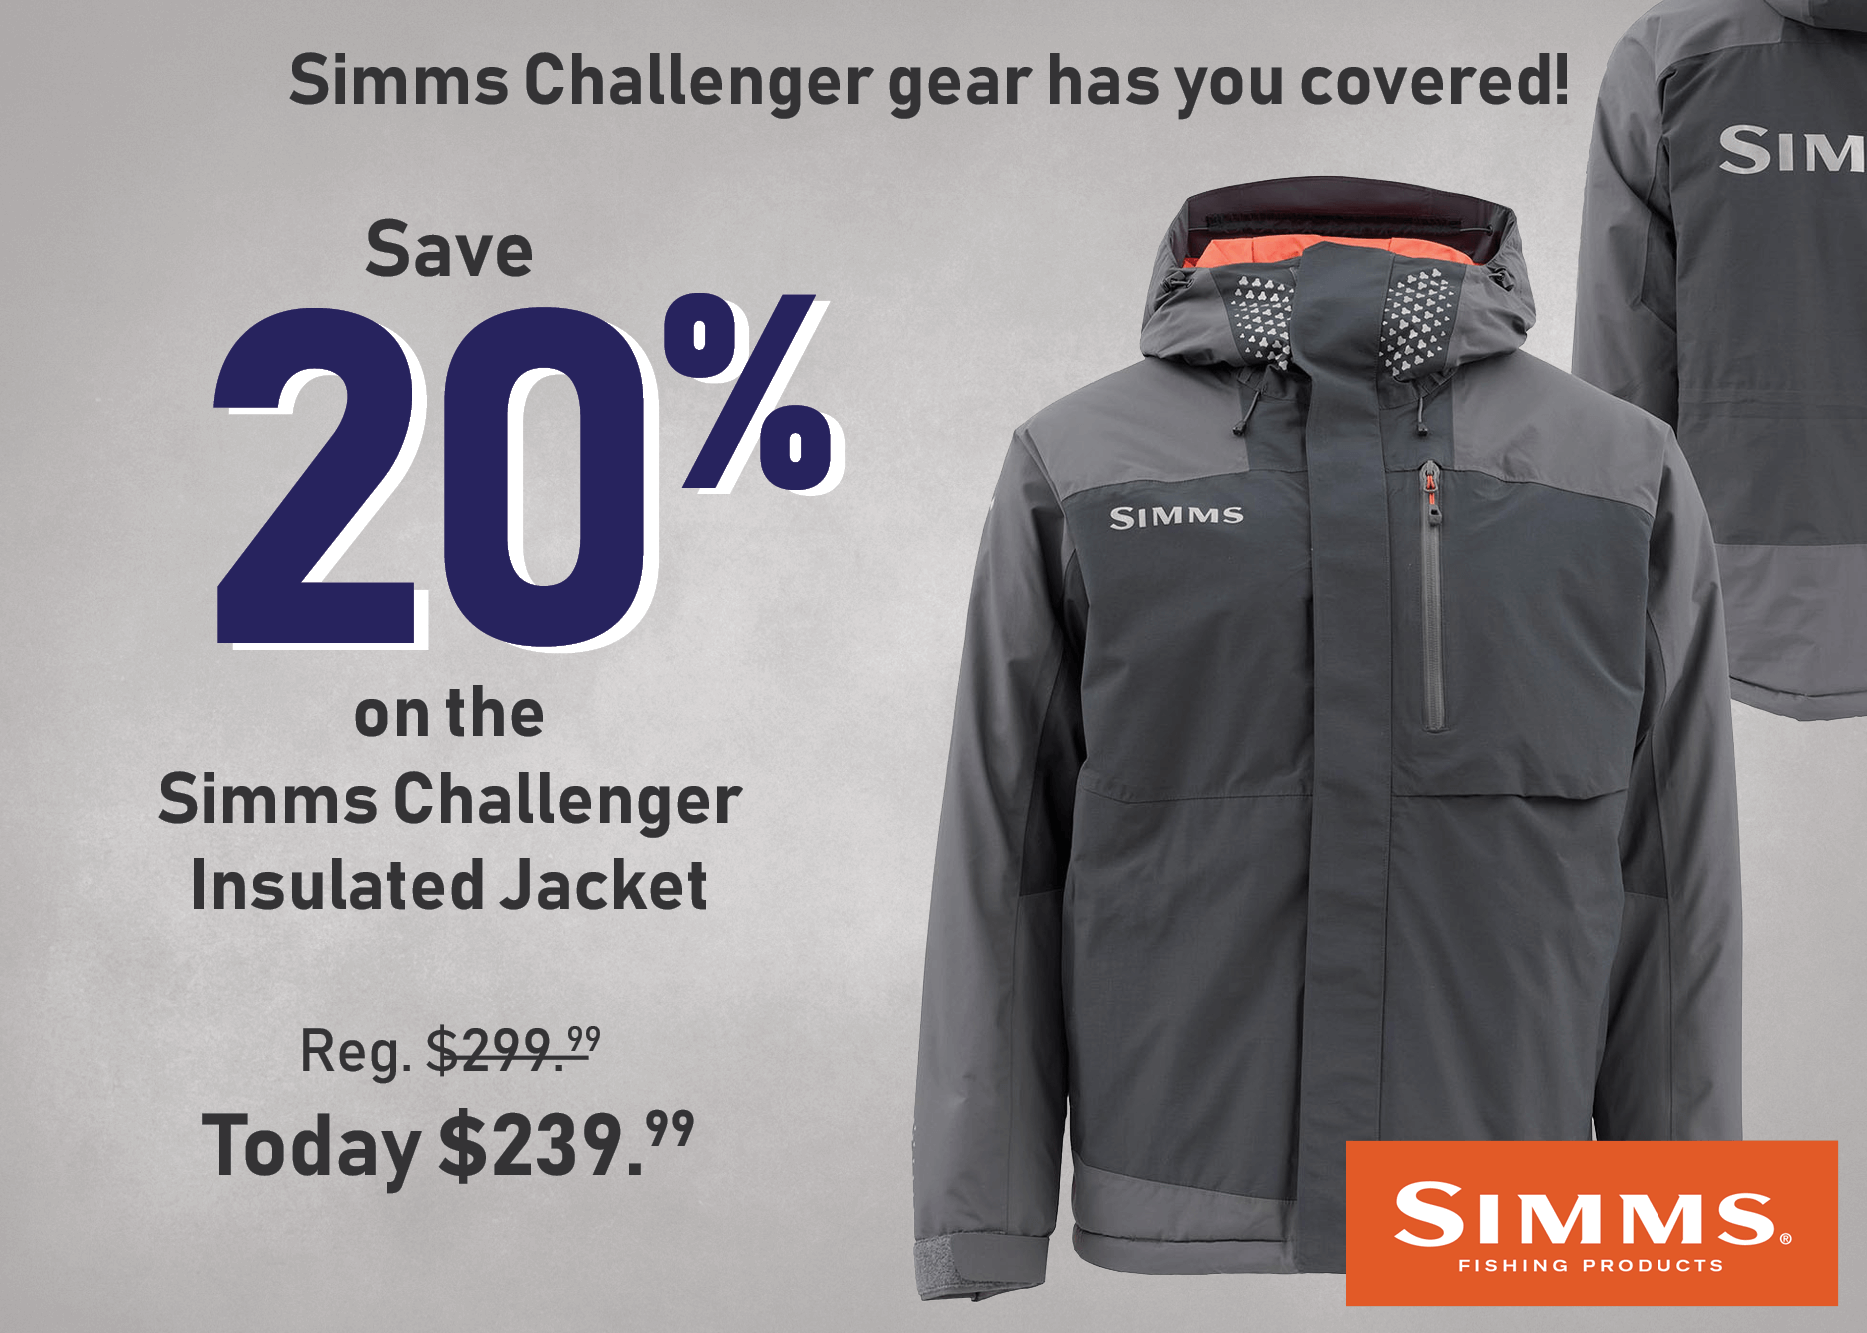 Save 20% on the Simms Challenger Insulated Jacket